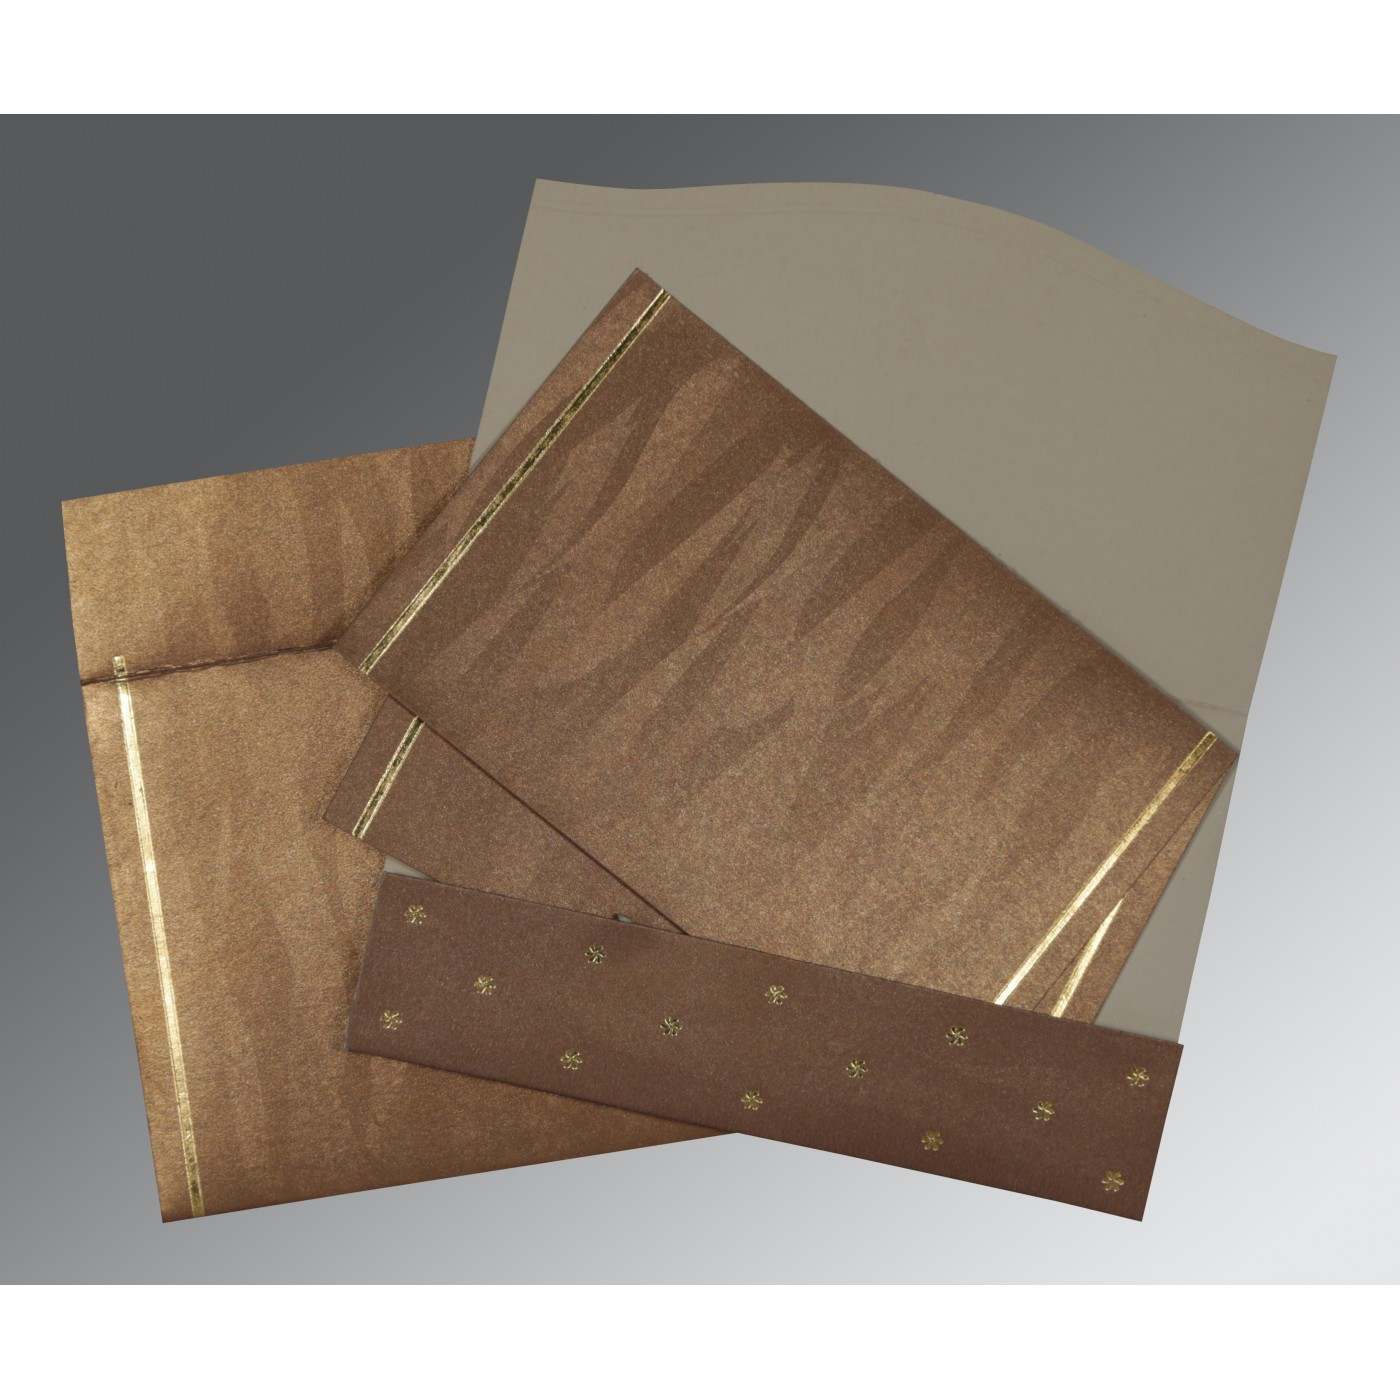 LIGHT BROWN SHIMMERY POCKET THEMED - FOIL STAMPED WEDDING CARD : AI-1413 - A2zWeddingCards